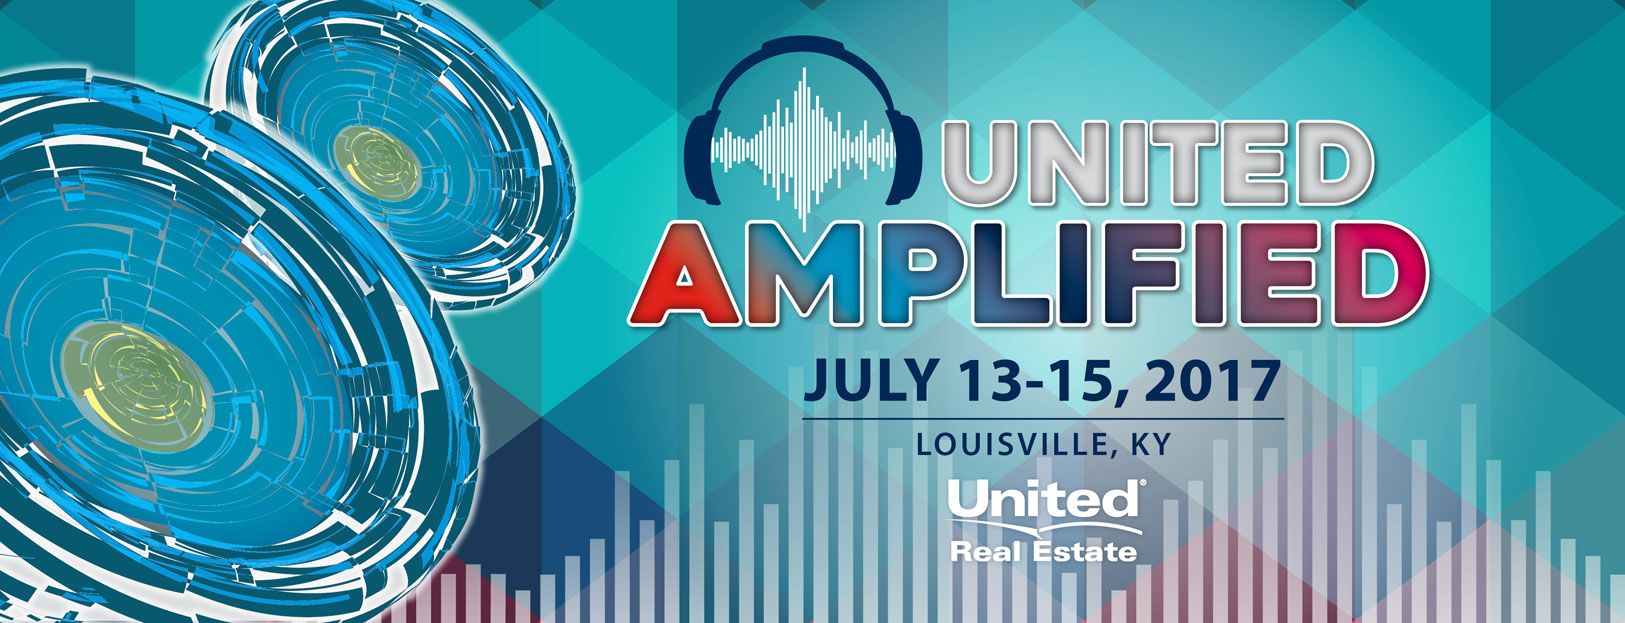 UnitedAmplified_1625x623